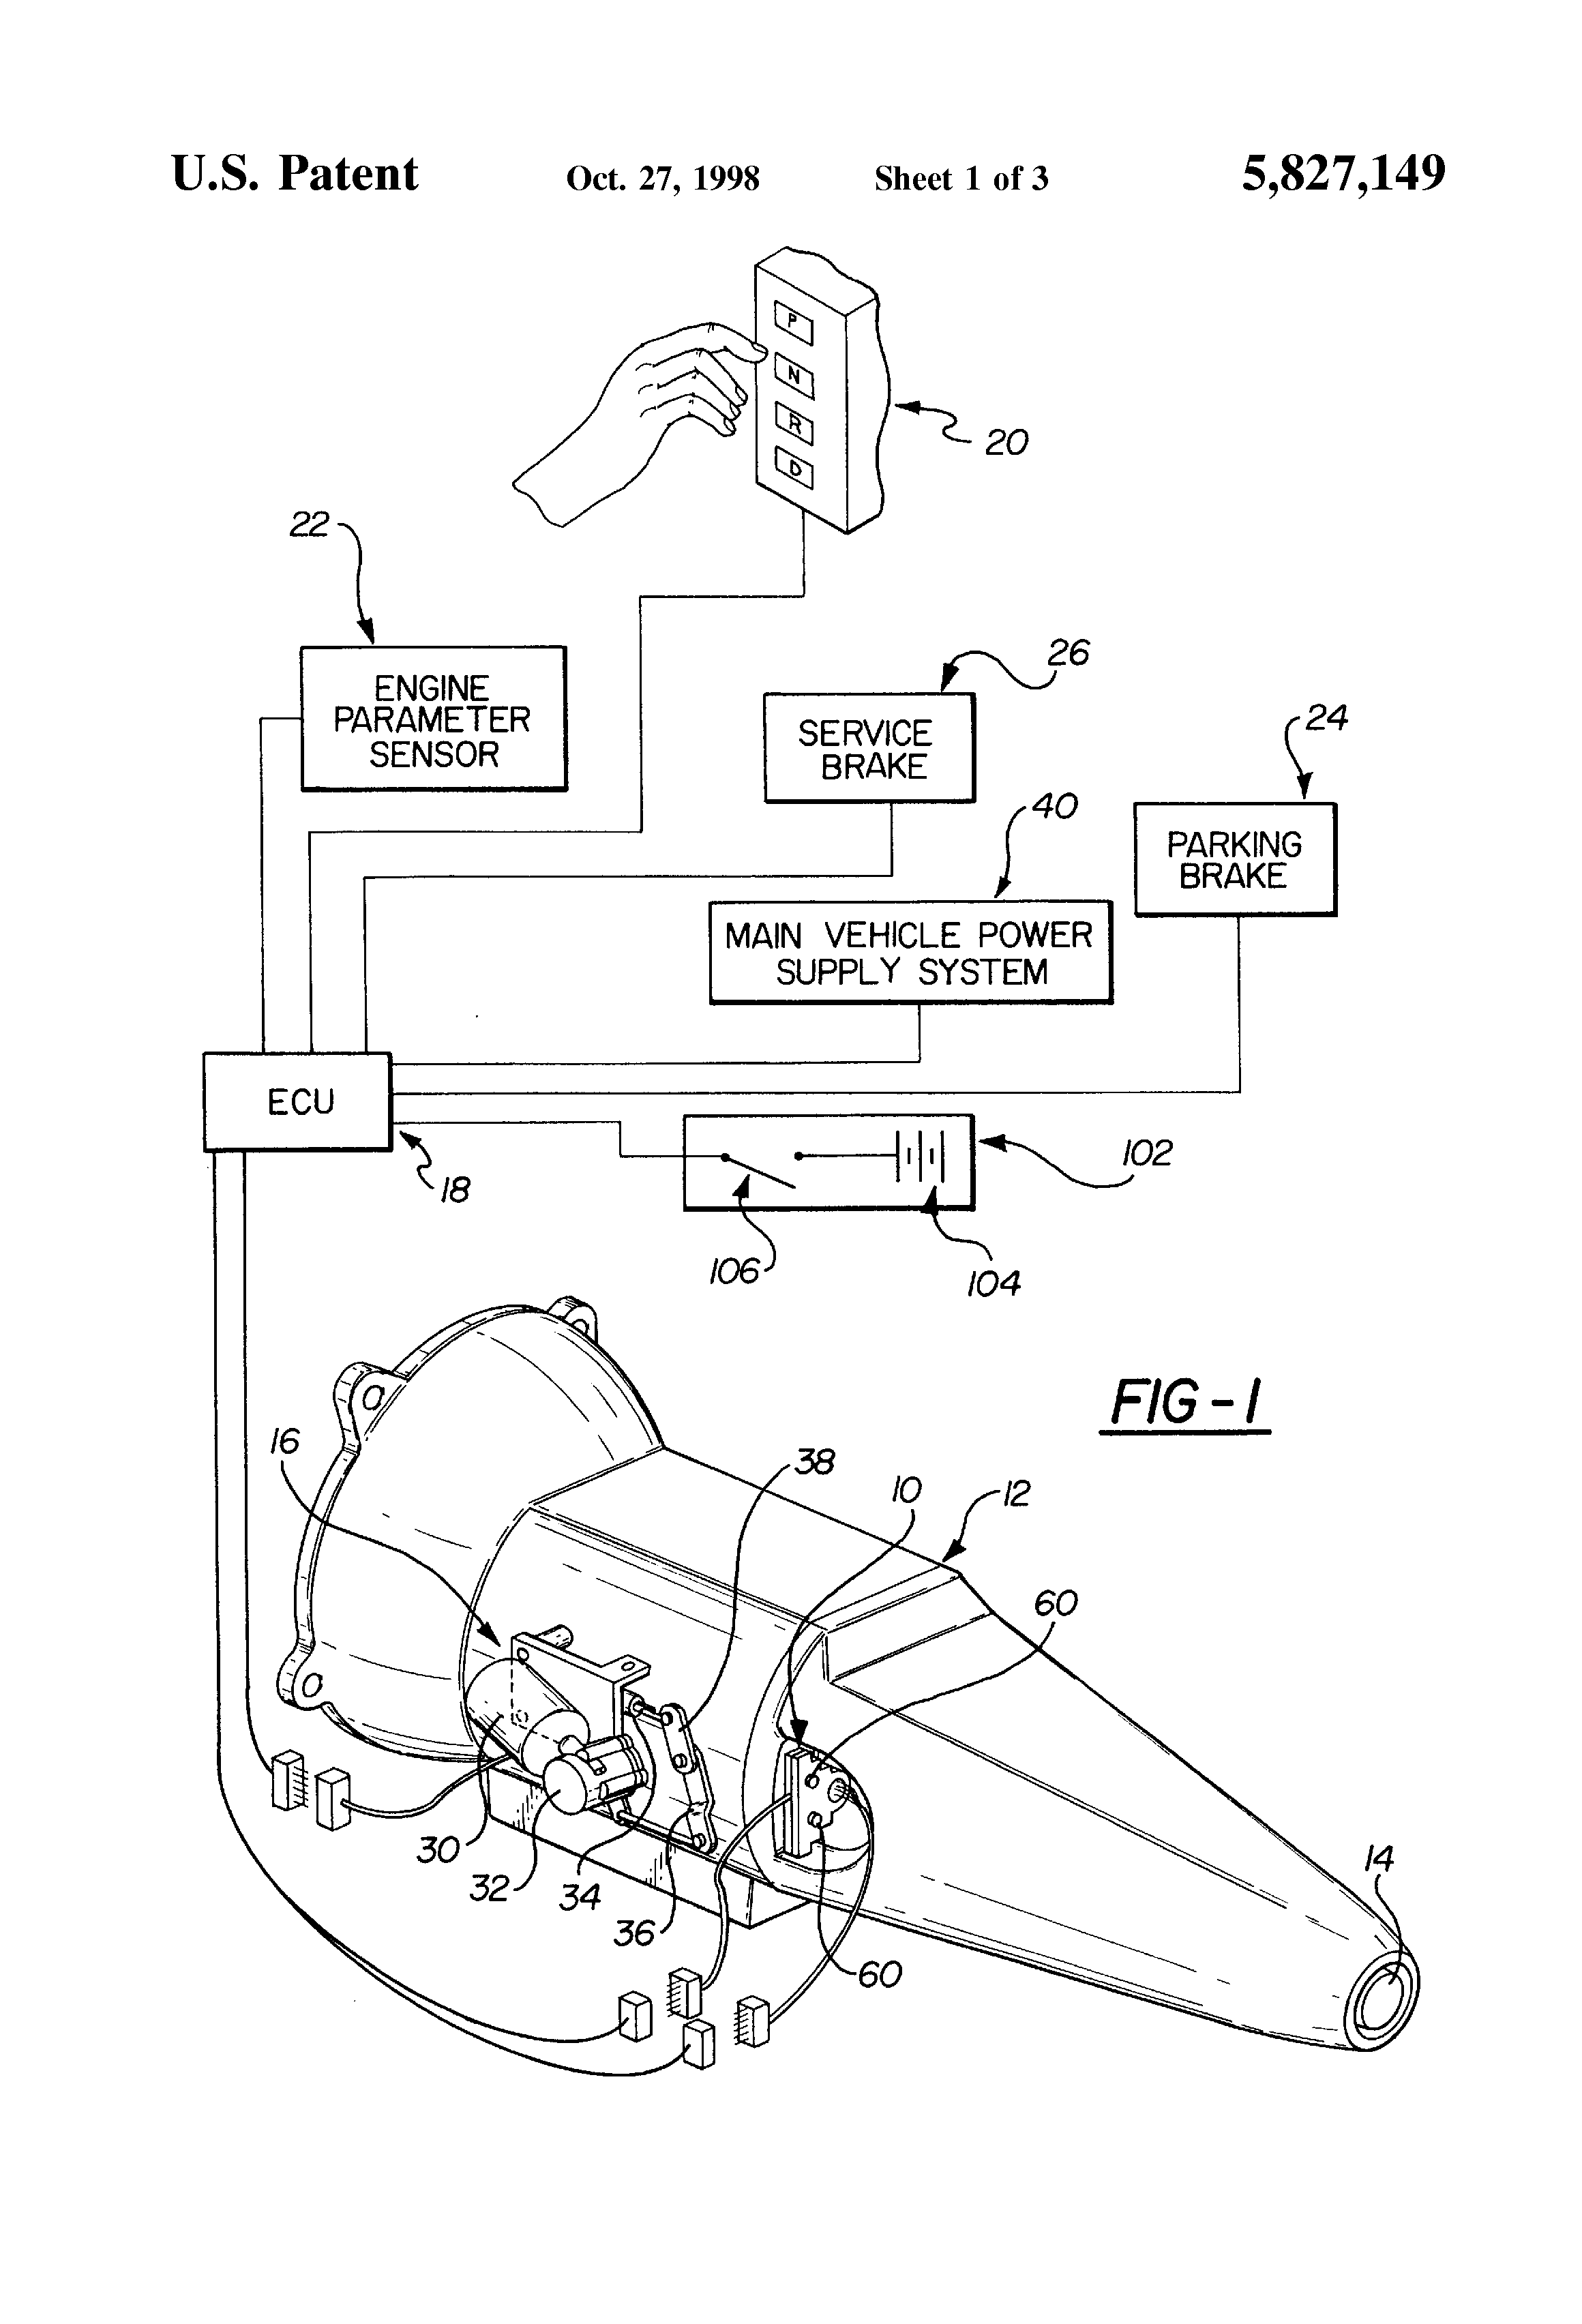 Patent us5827149 electrically operated park lock for automatic eaton autoshift reset at eaton automatic transmission wiring